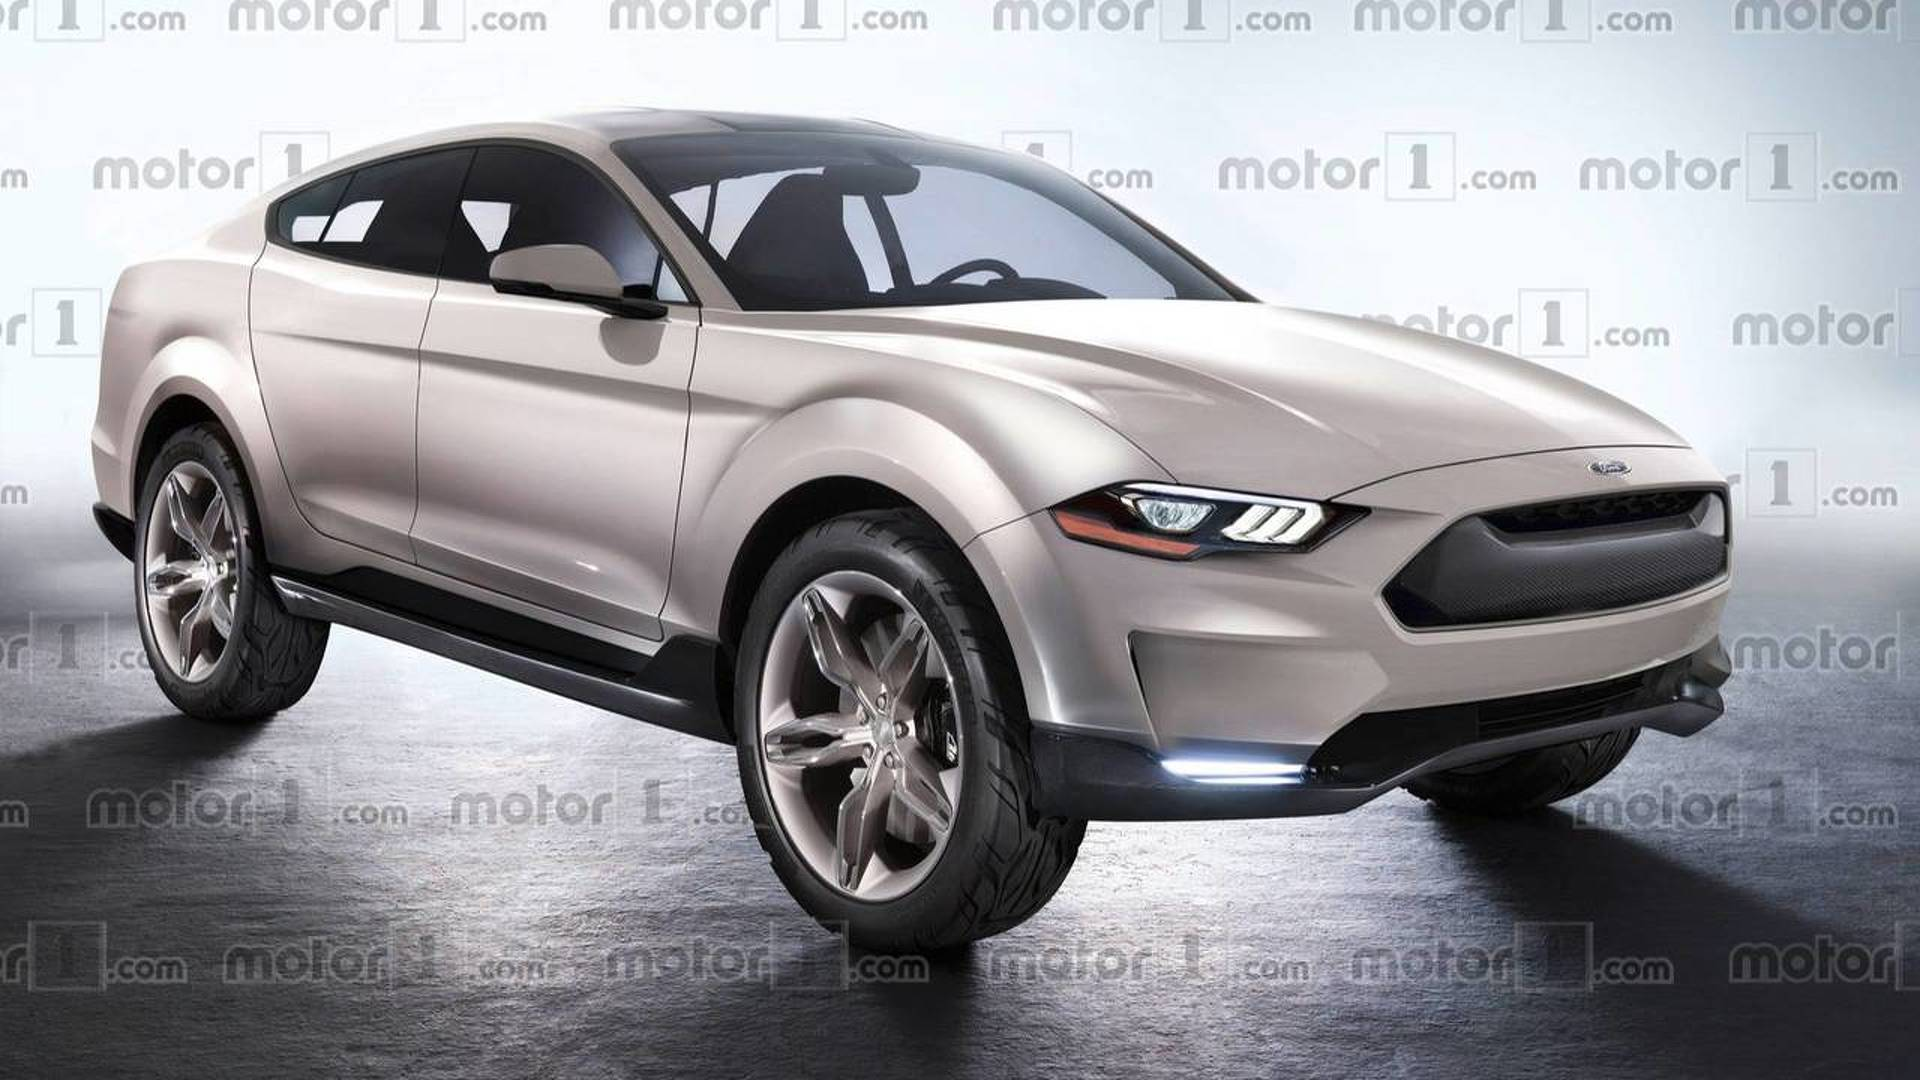 Ford Electric Car >> Ford Mustang Esque Electric Suv To Be Built In Mexico